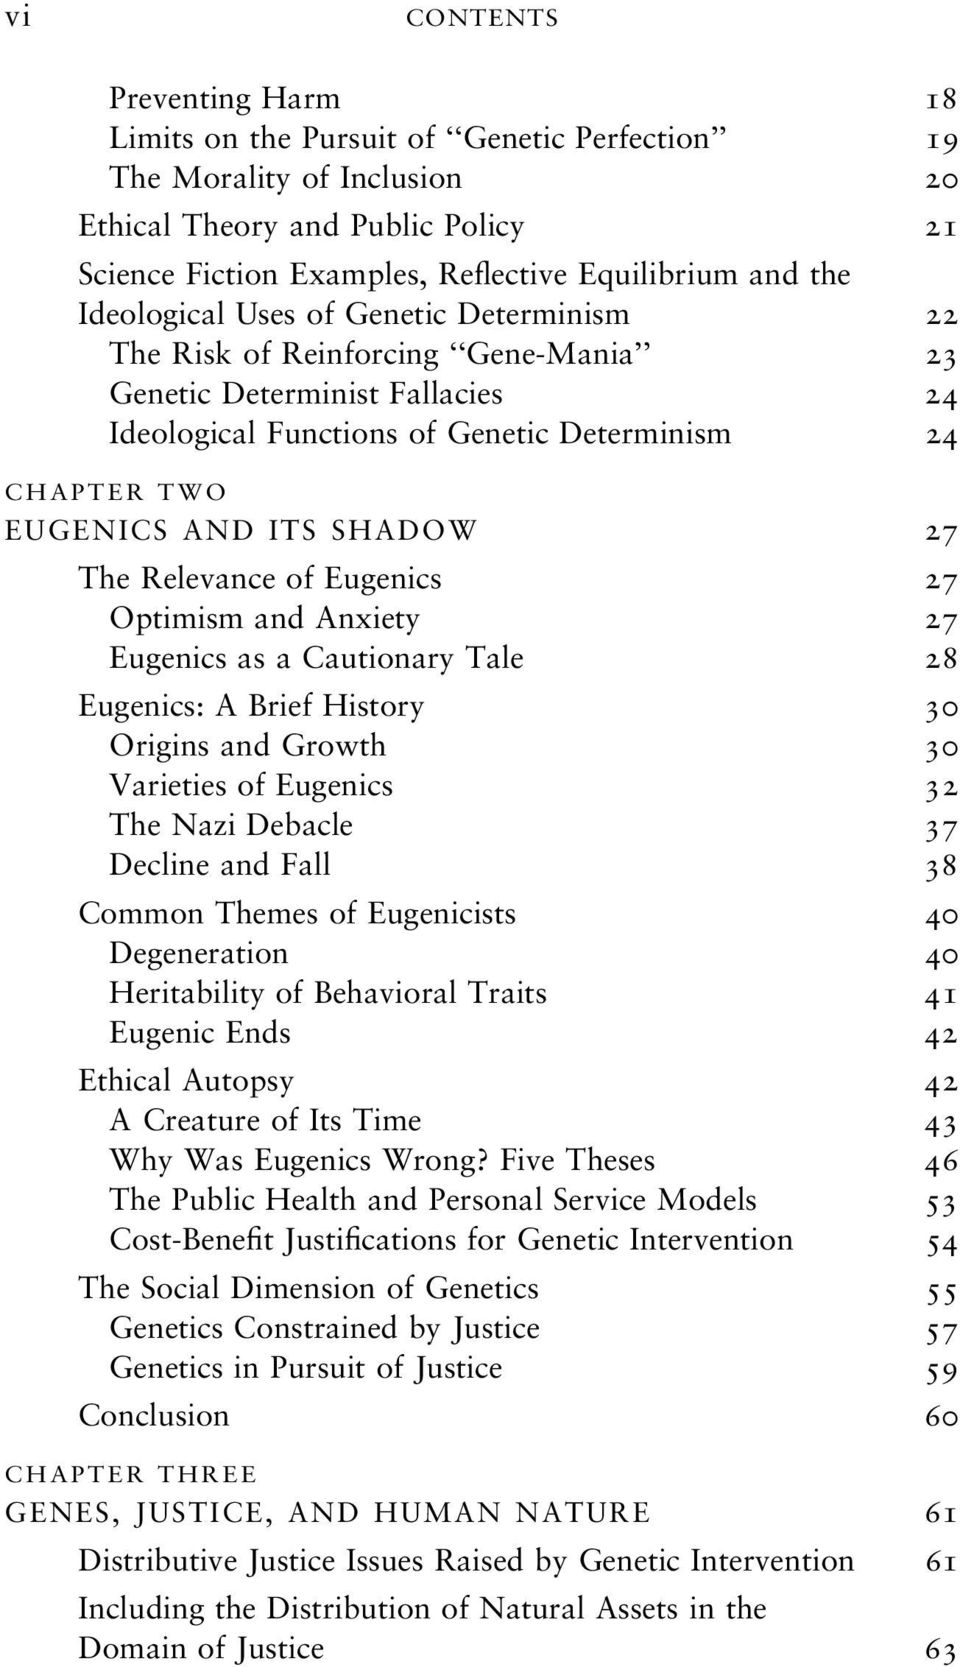 27 The Relevance of Eugenics 27 Optimism and Anxiety 27 Eugenics as a Cautionary Tale 28 Eugenics: A Brief History 30 Origins and Growth 30 Varieties of Eugenics 32 The Nazi Debacle 37 Decline and